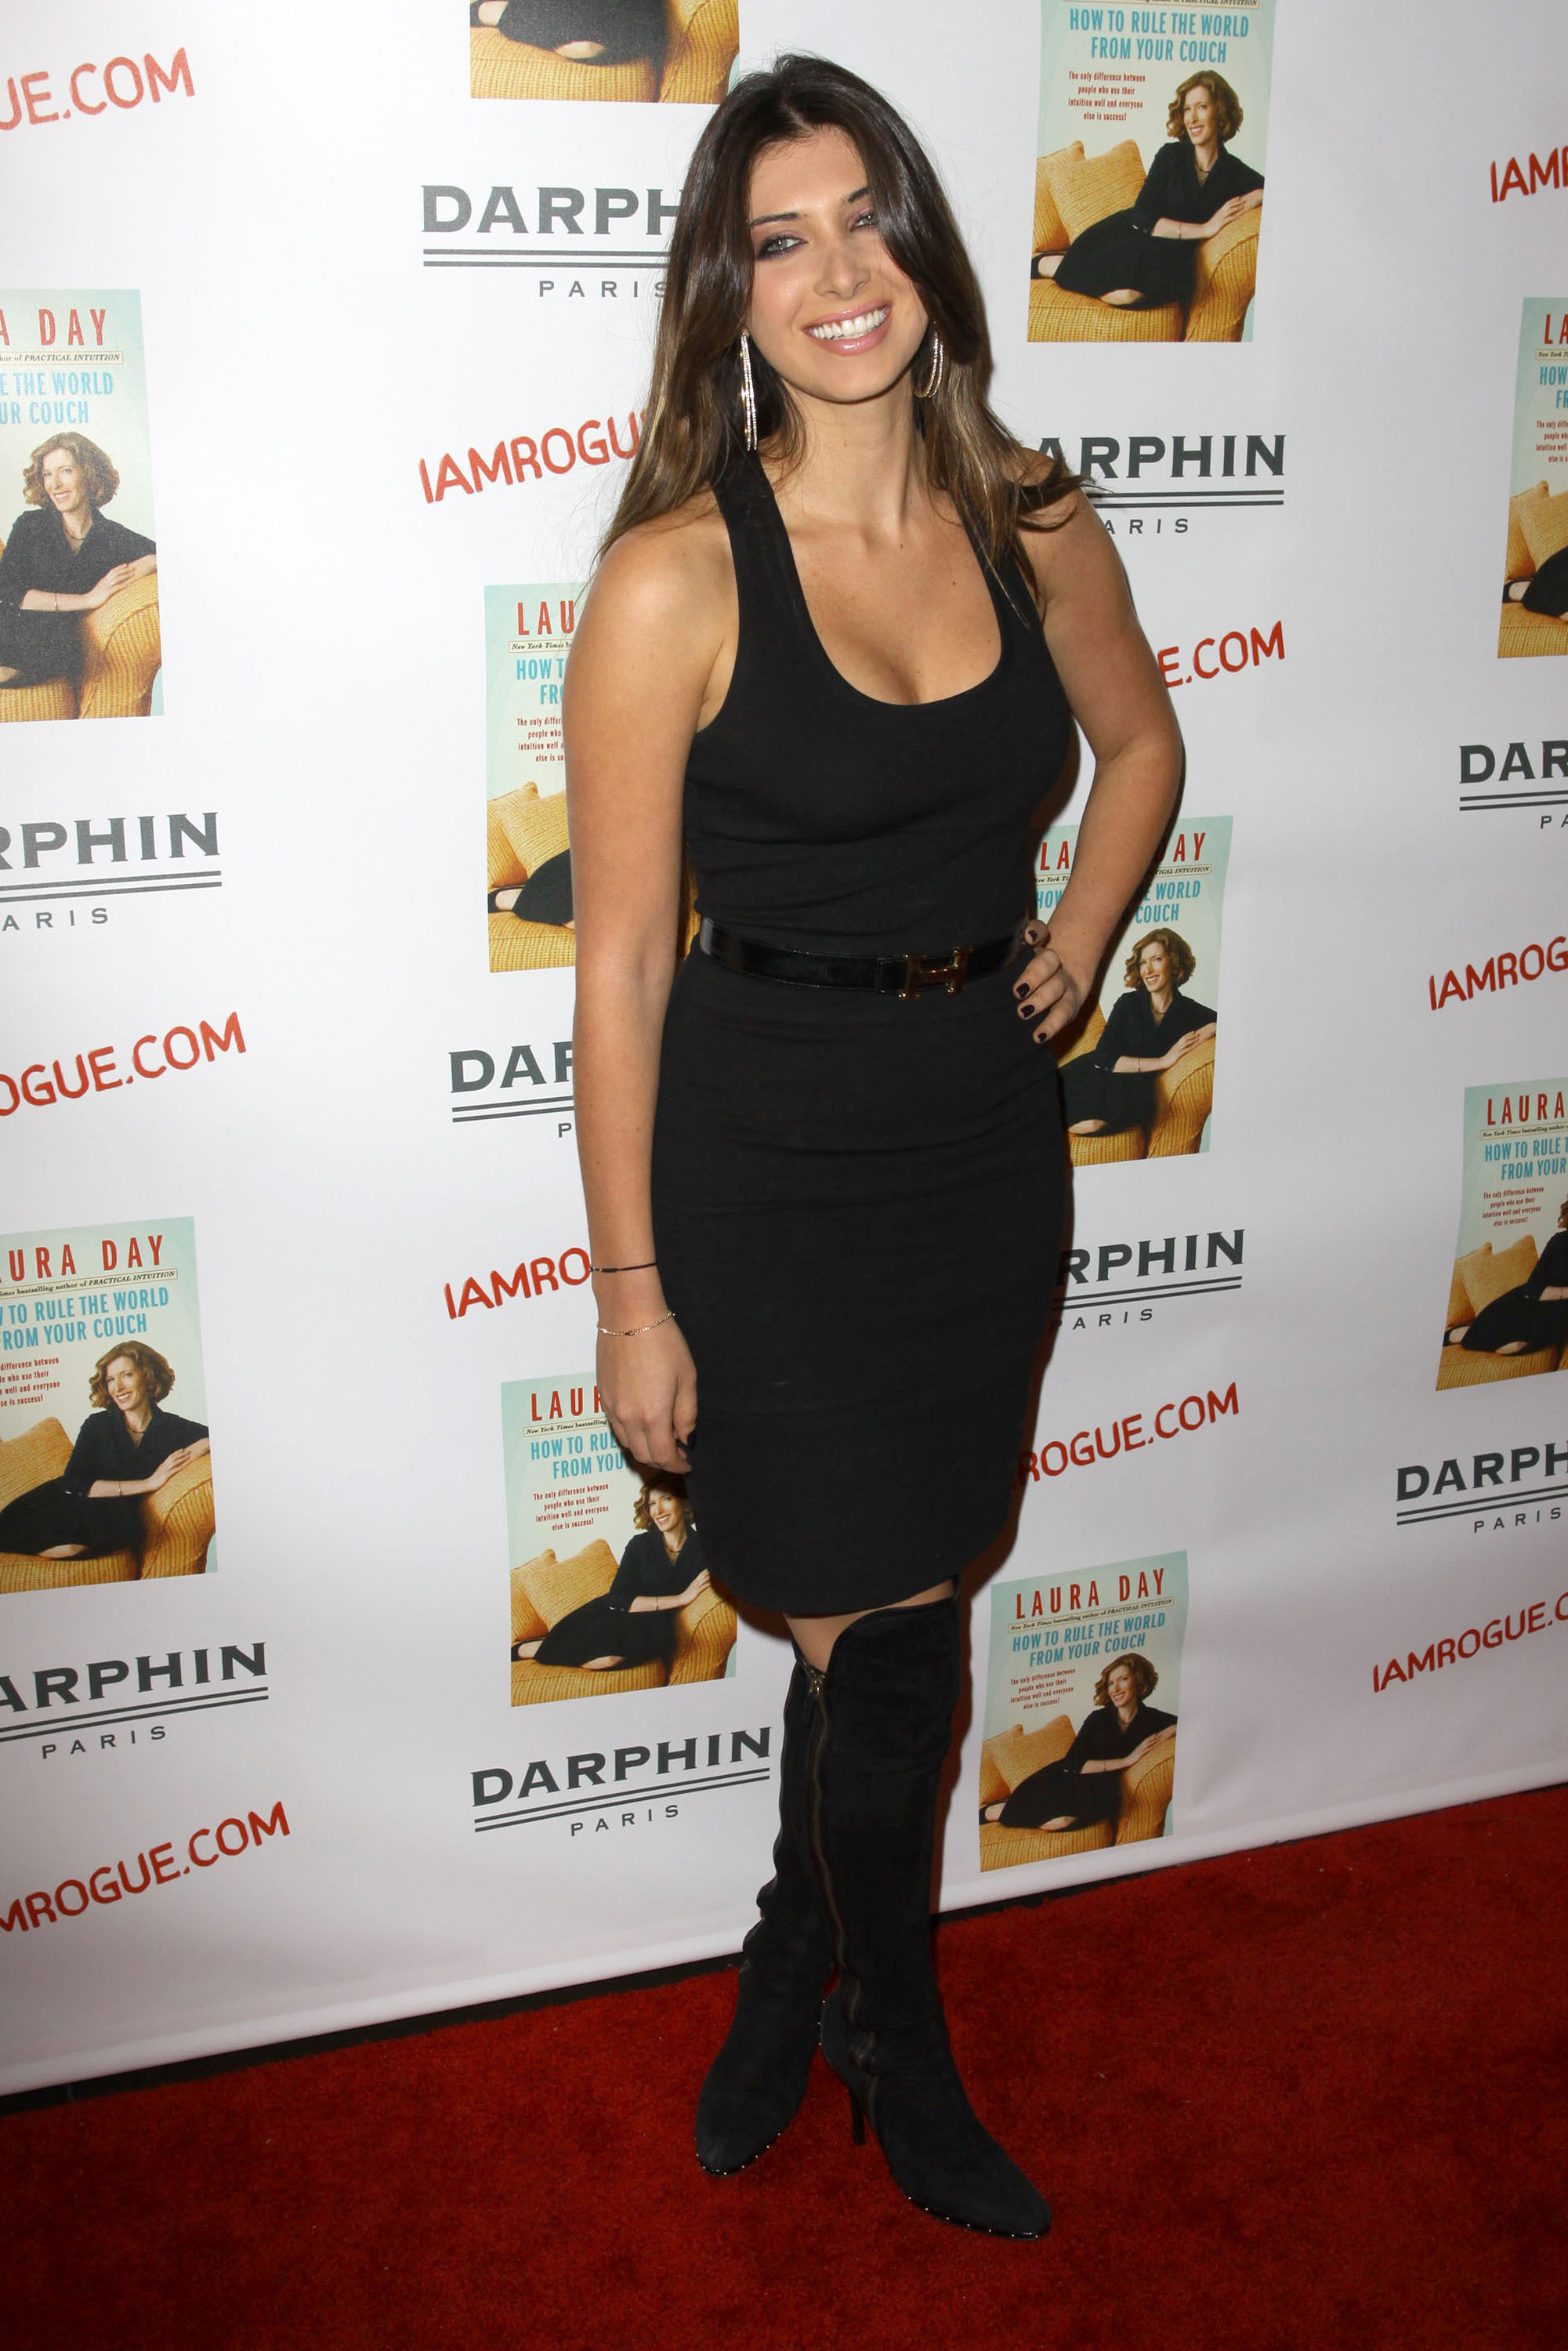 02401_celebrity-paradise.com-The_Elder-Brittny_Gastineau_2009-10-19_-_Book_Party_For_Laura_Day_165_122_373lo.jpg